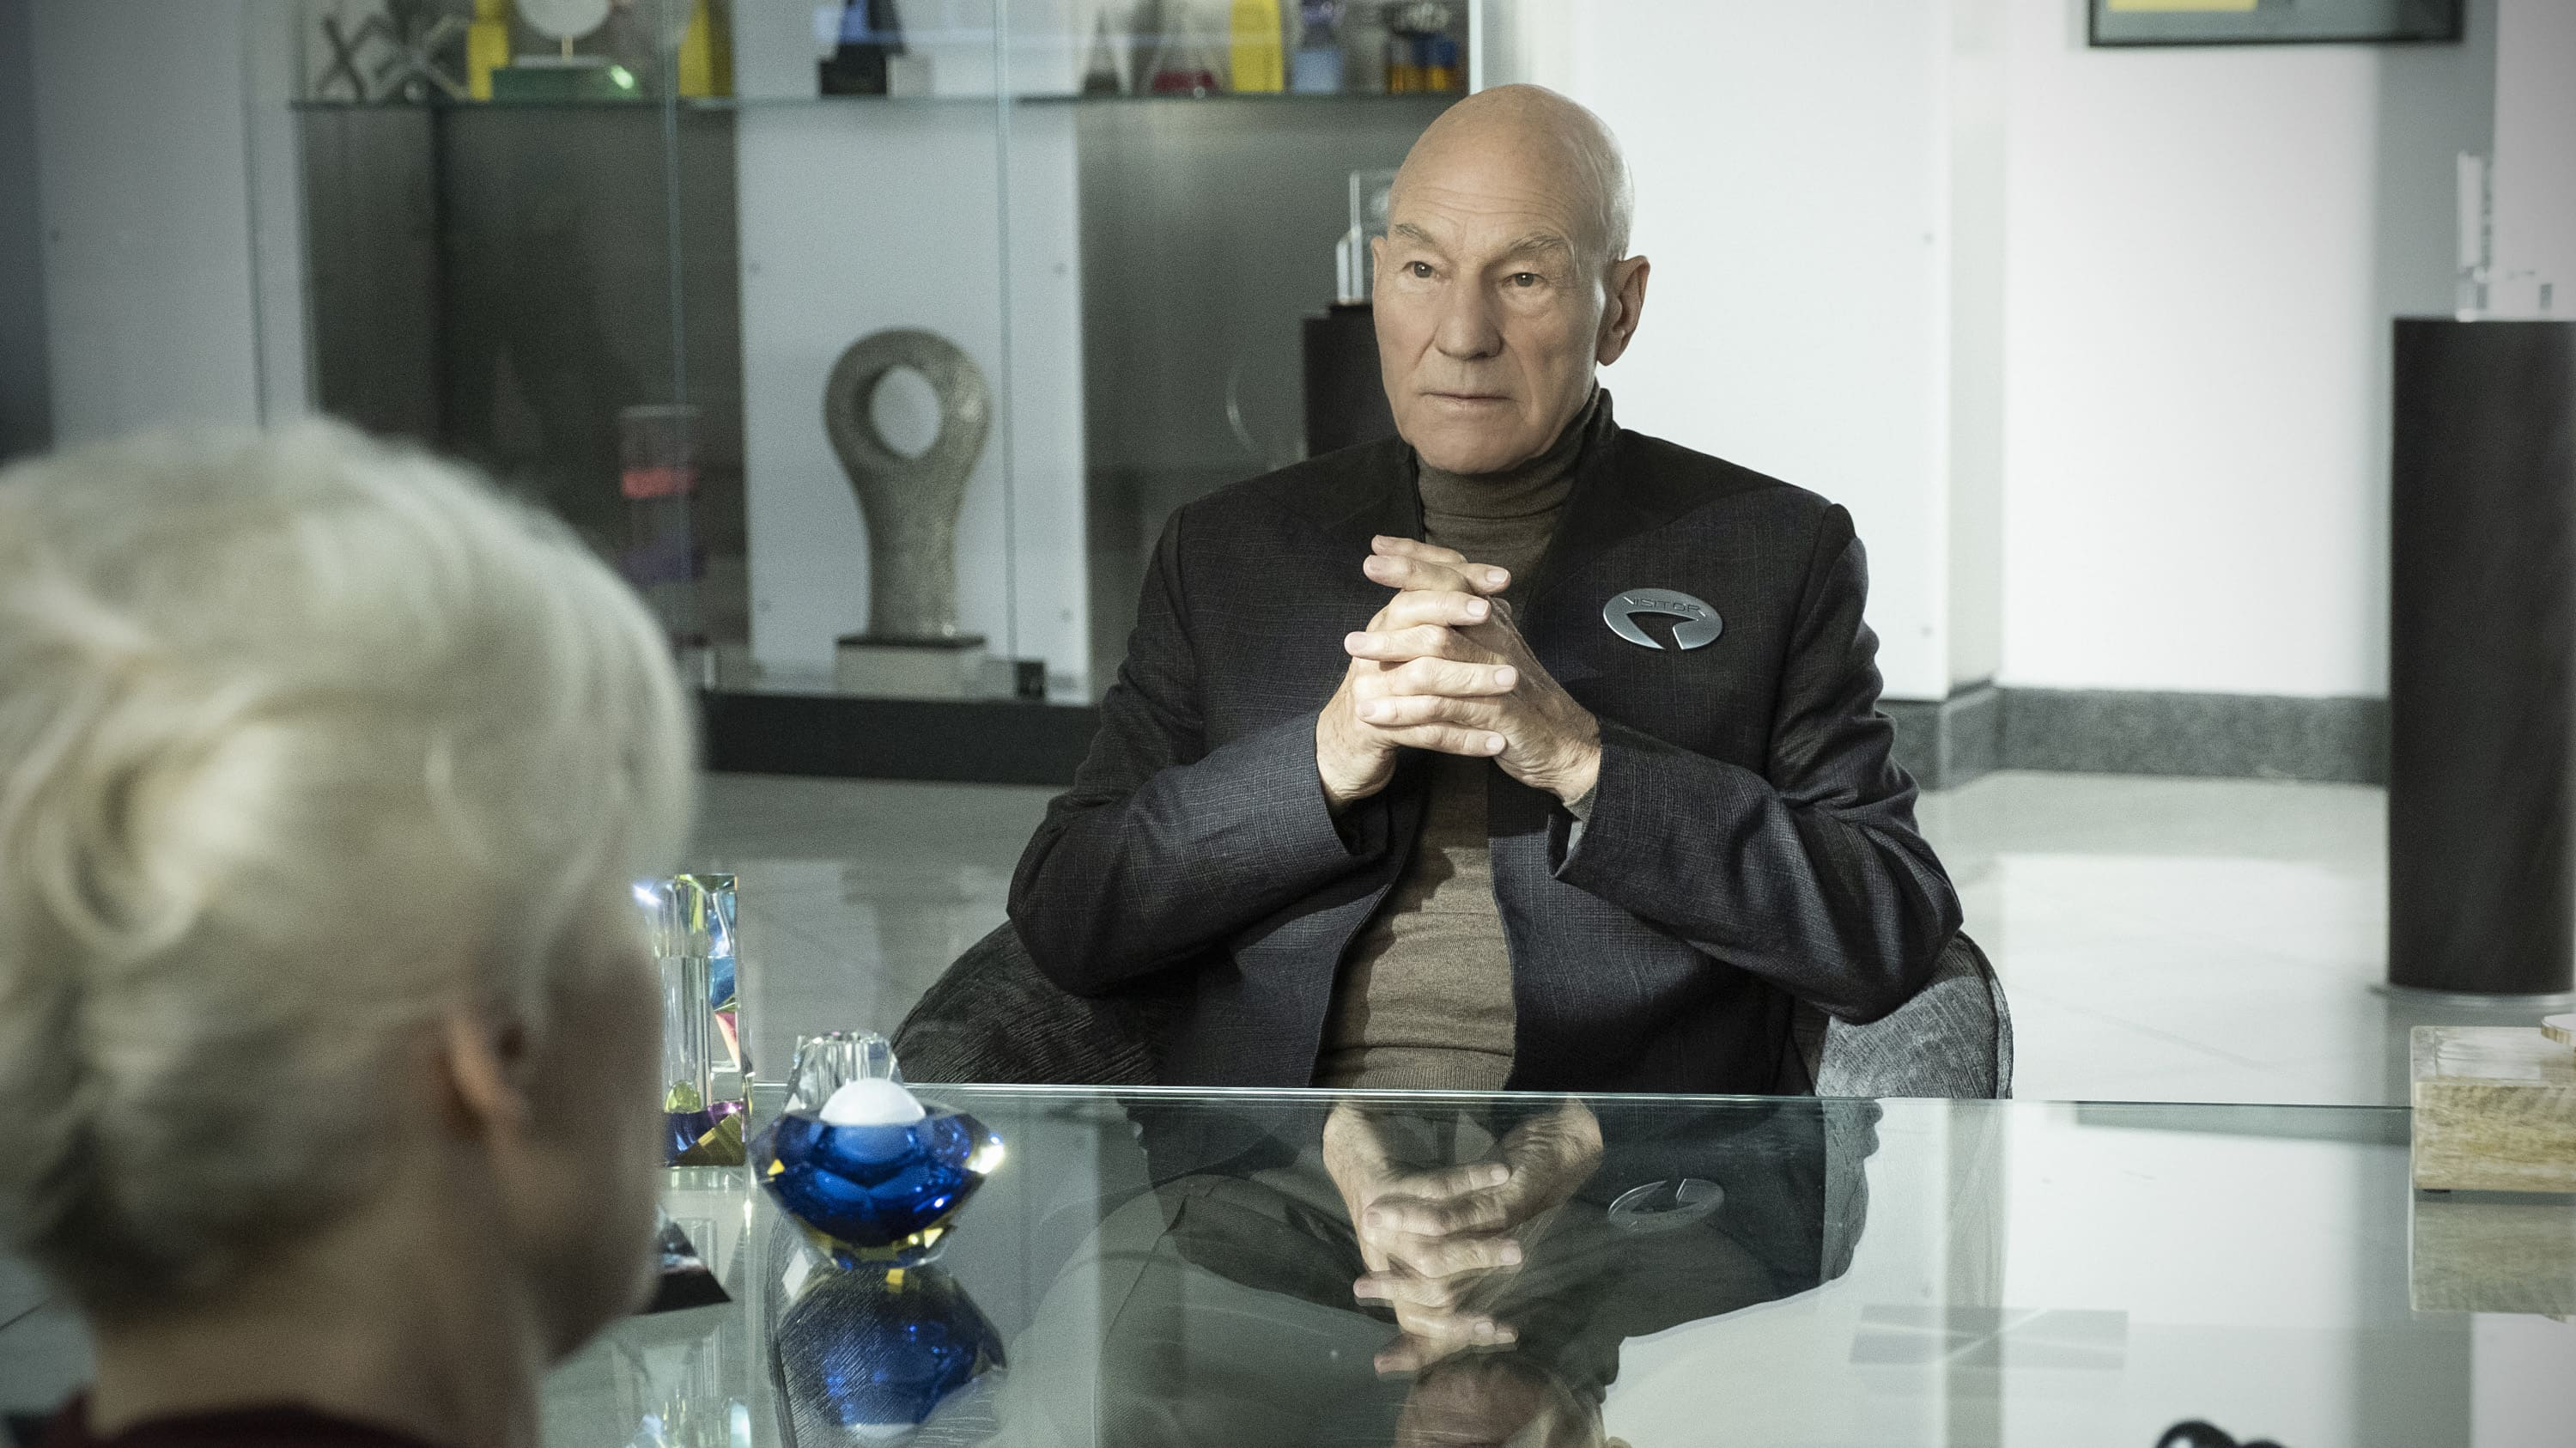 Patrick Stewart from Star Trek sitting at a glass table with his hands clasped.